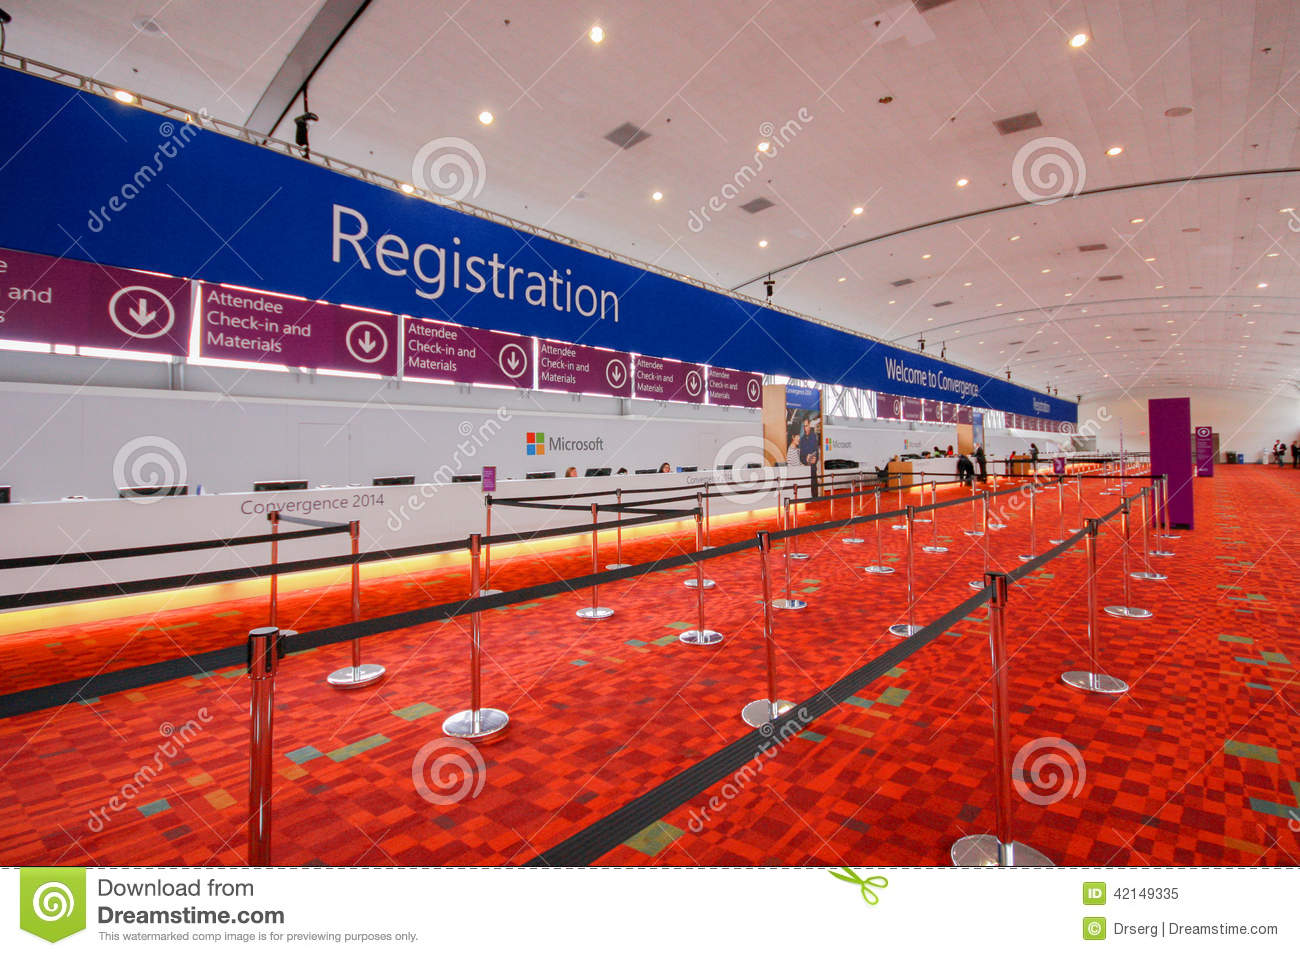 Registration Desk On The Eve Of Opening Microsoft Convergence Conference Editorial Image Image